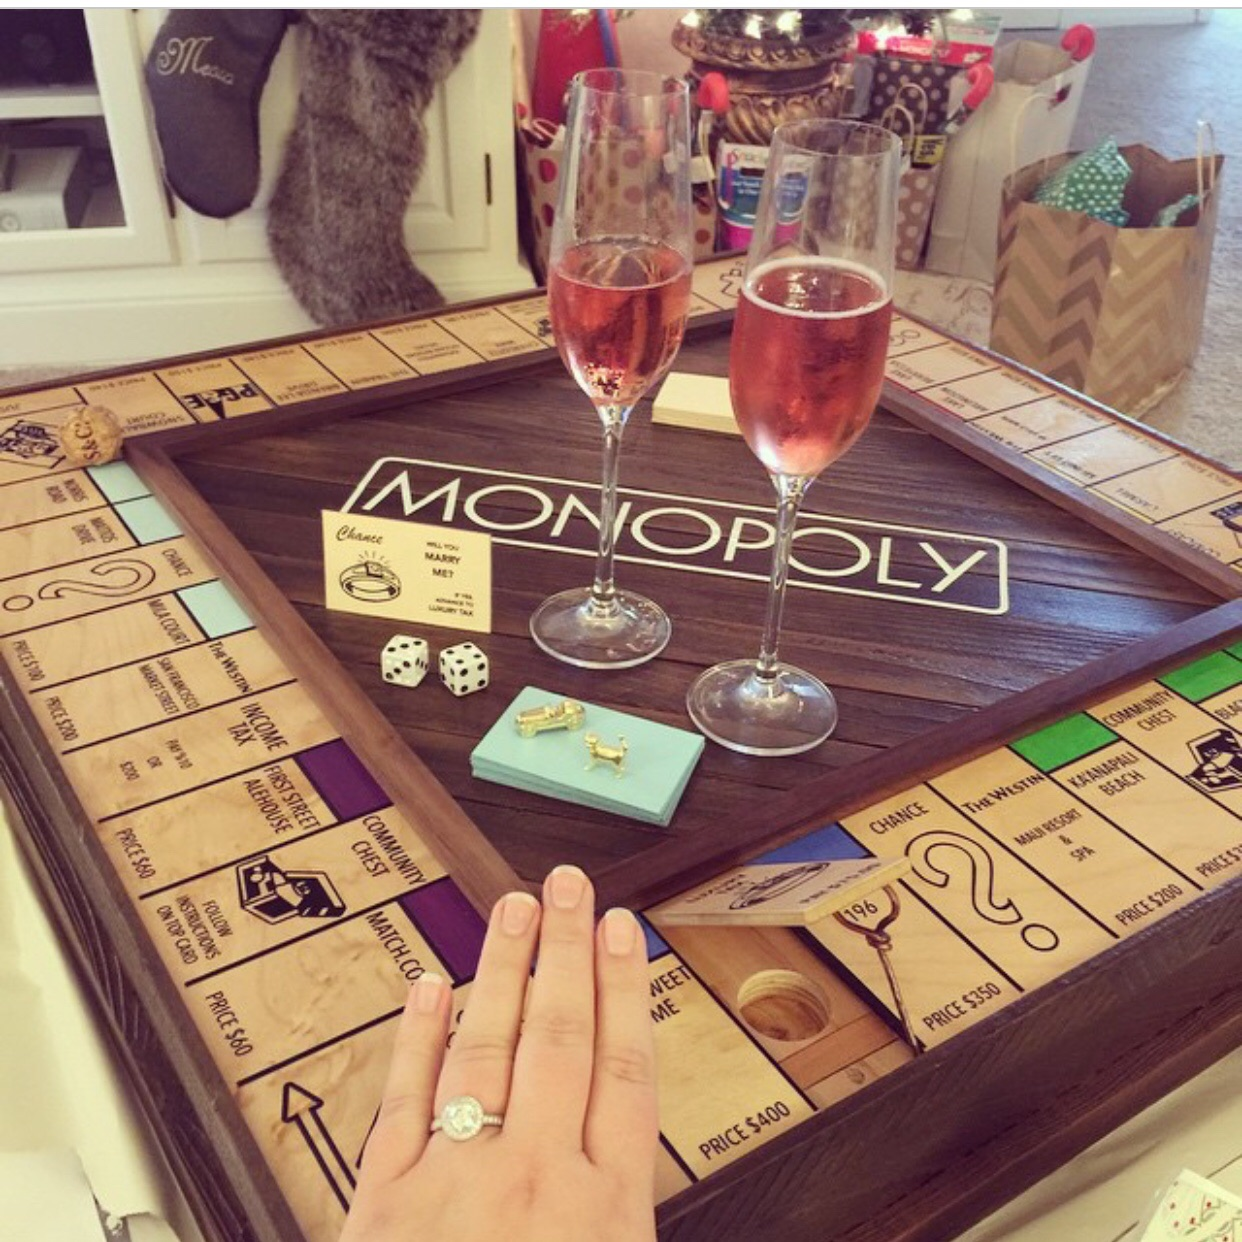 This Monopoly Board Game Proposal Is One Of The Most Creative Things We Ve Ever Seen Aol News